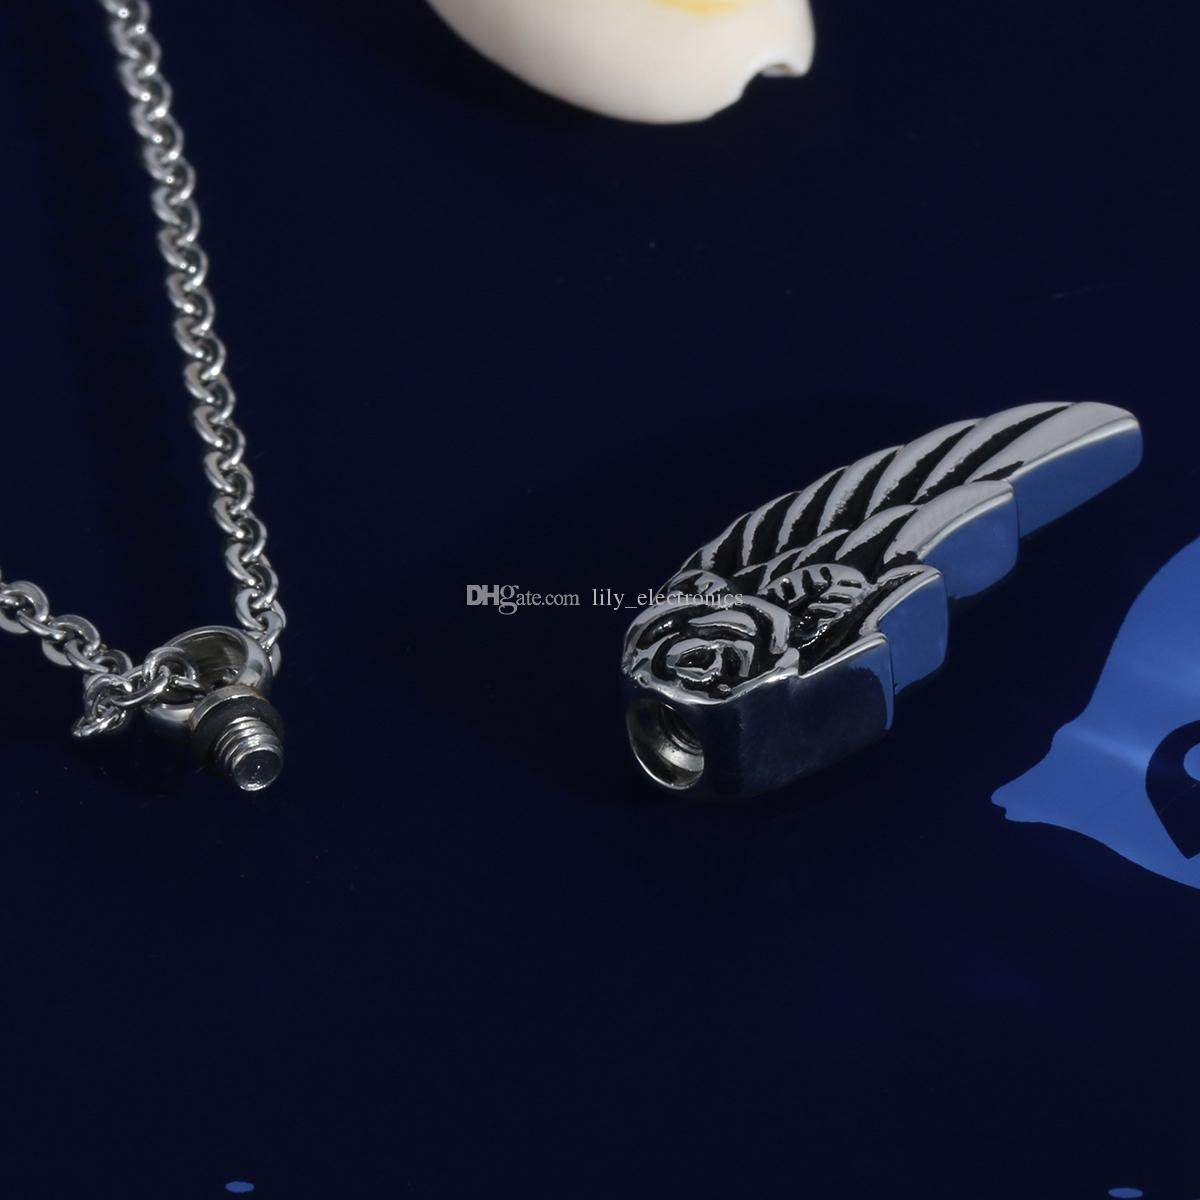 Lily Cremation Jewelry Stainless Steel Waterproof Angel Wings Urn Pendant Memorial Ash Keepsake Necklace with gift bag and chain